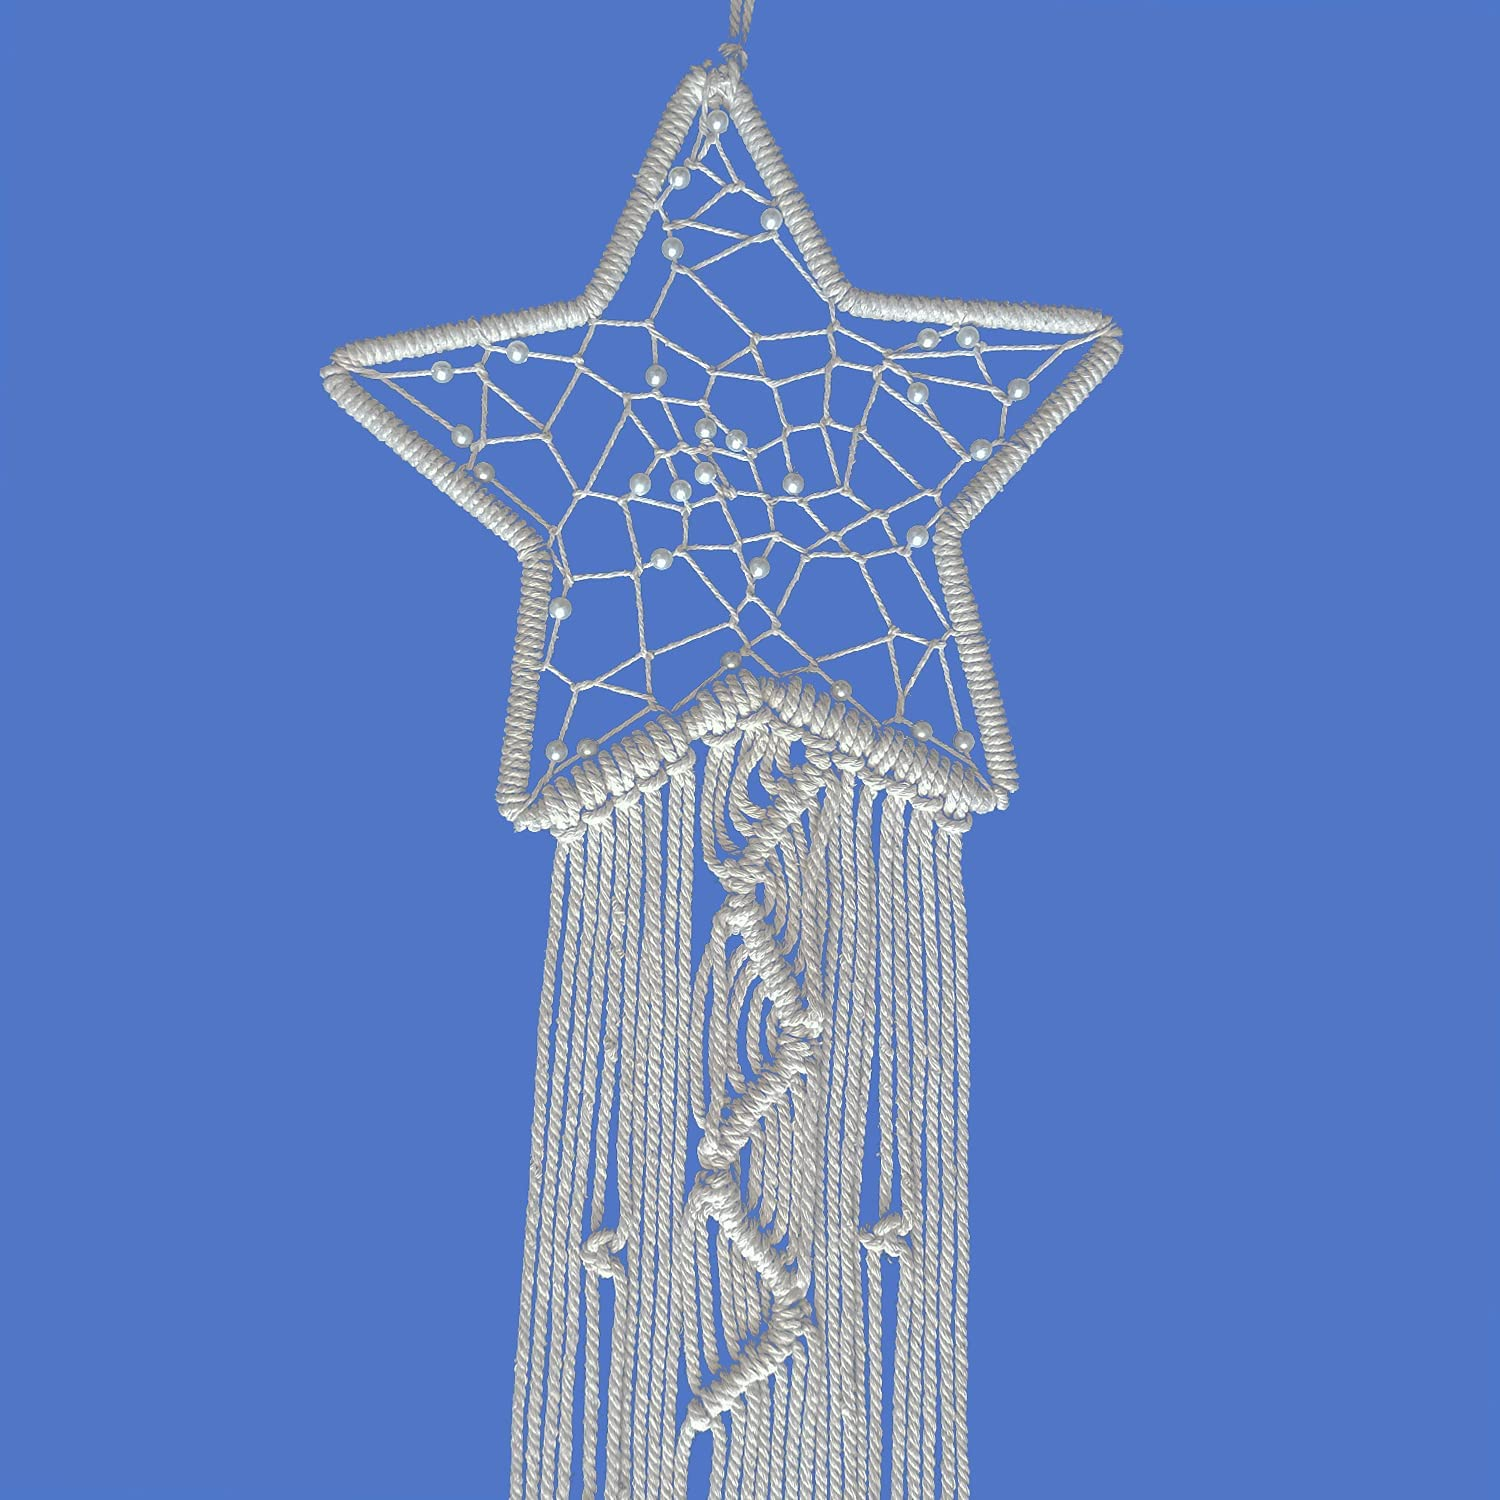 Samhita Star Dreamcatcher Home Décor Gifts for Girls,Gifts for mom for Kids,Wall Decor,Wall Decorations for Bedroom